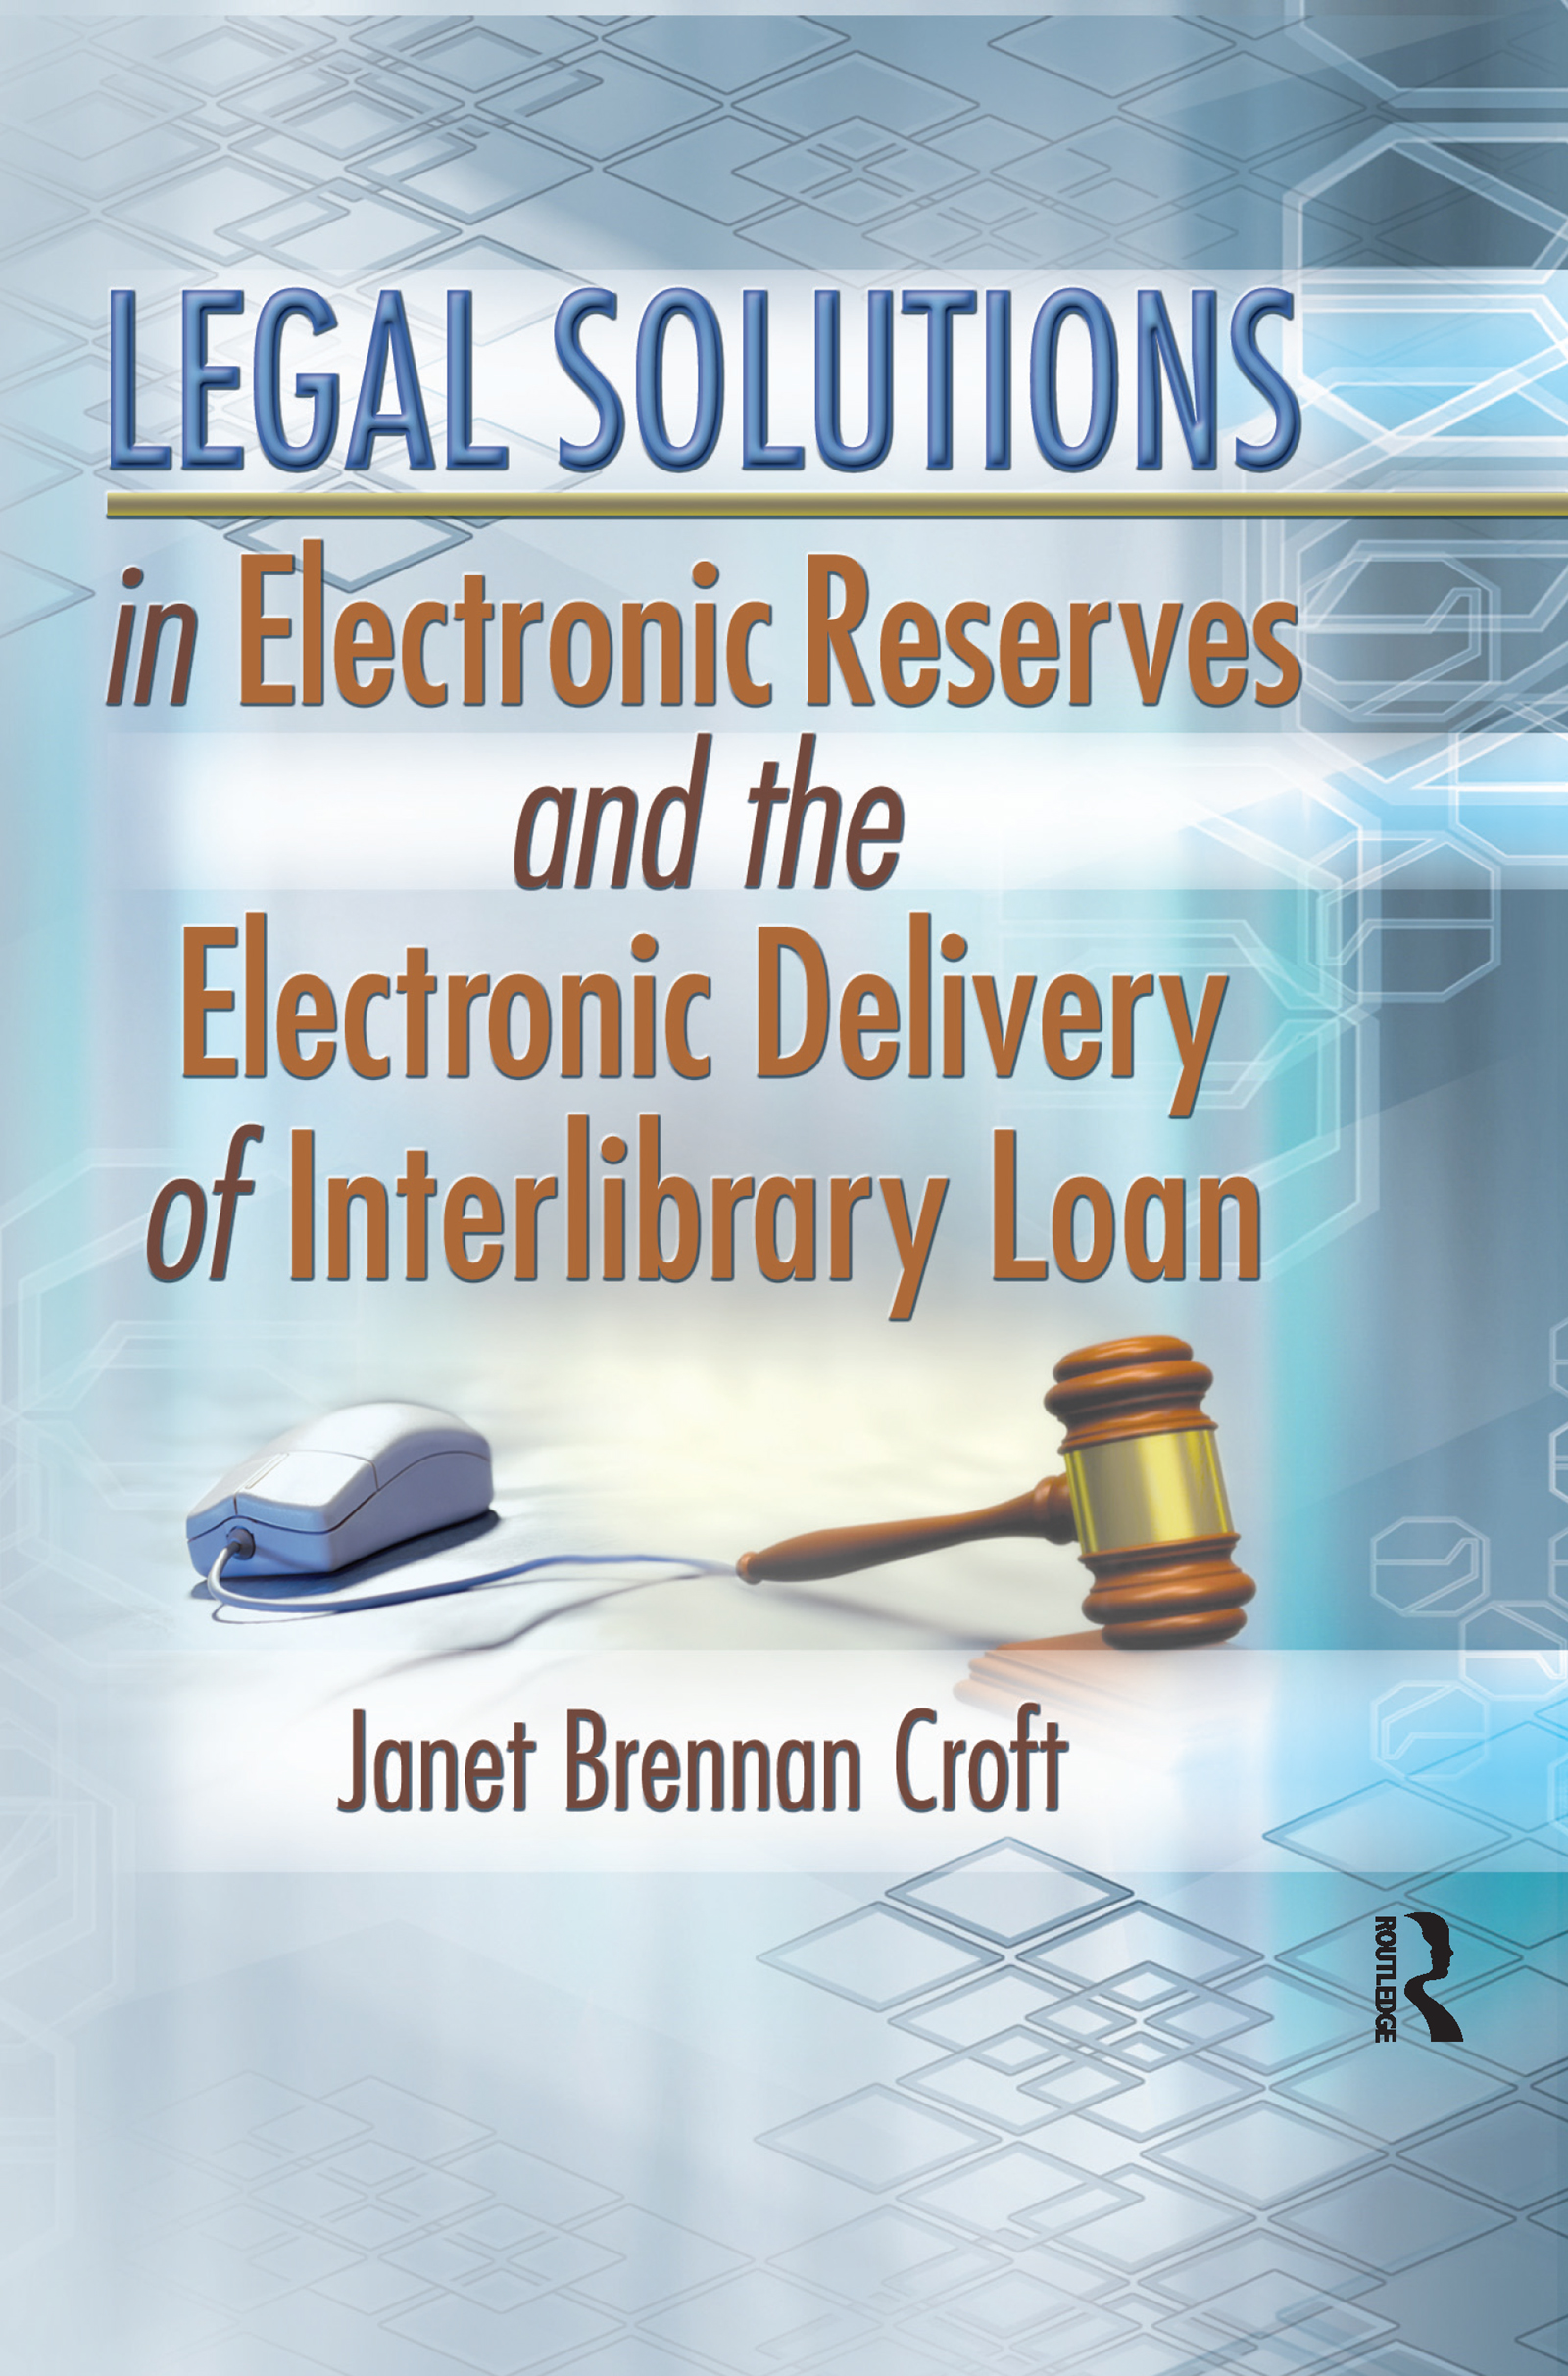 Legal Solutions in Electronic Reserves and the Electronic Delivery of Interlibrary Loan book cover